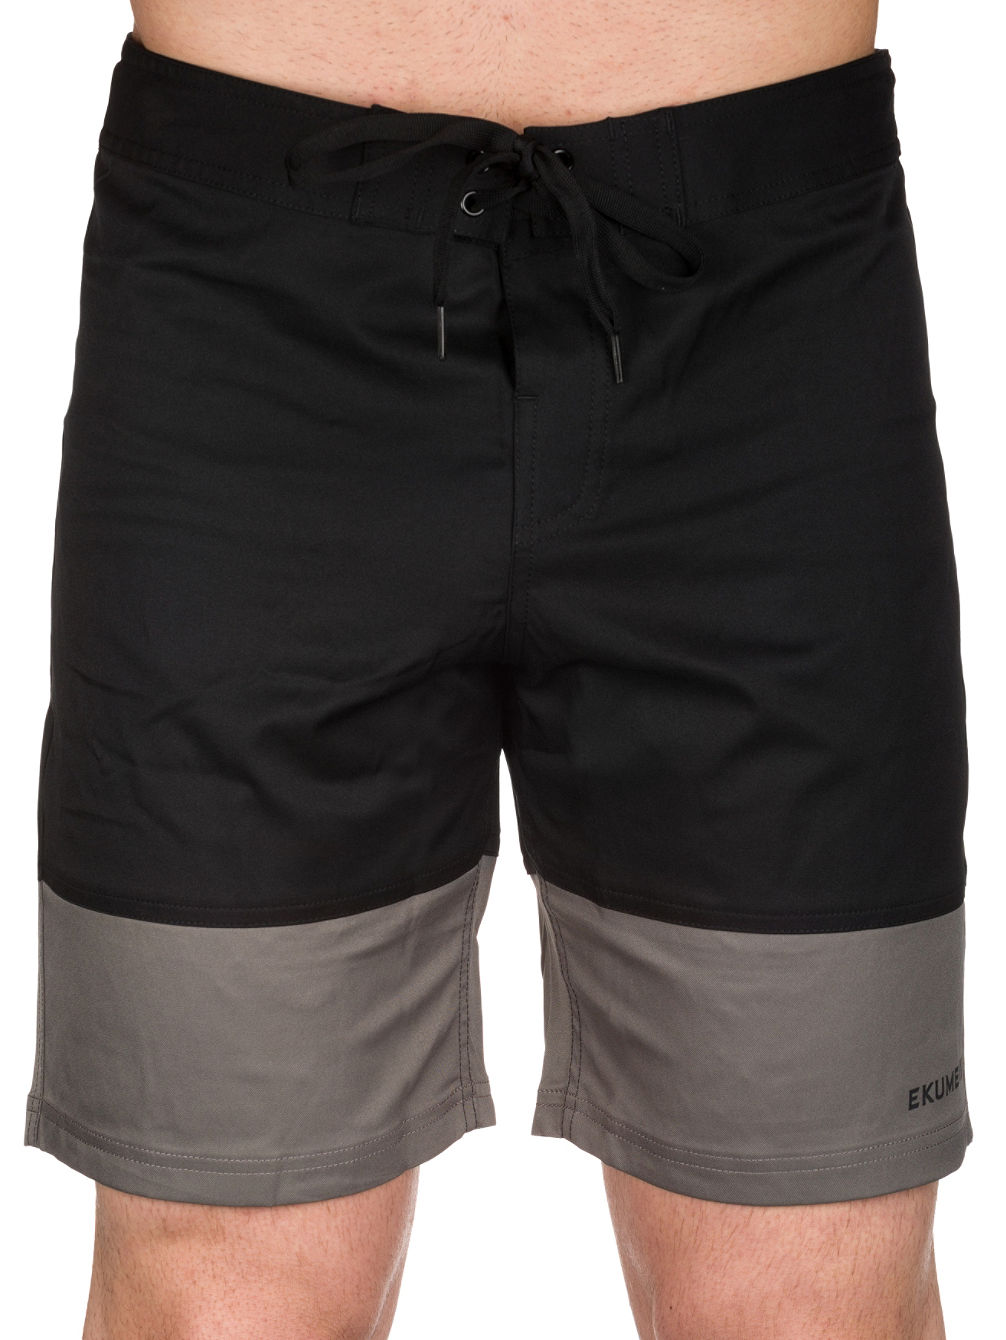 "Jeffrey 18"" Boardshorts"